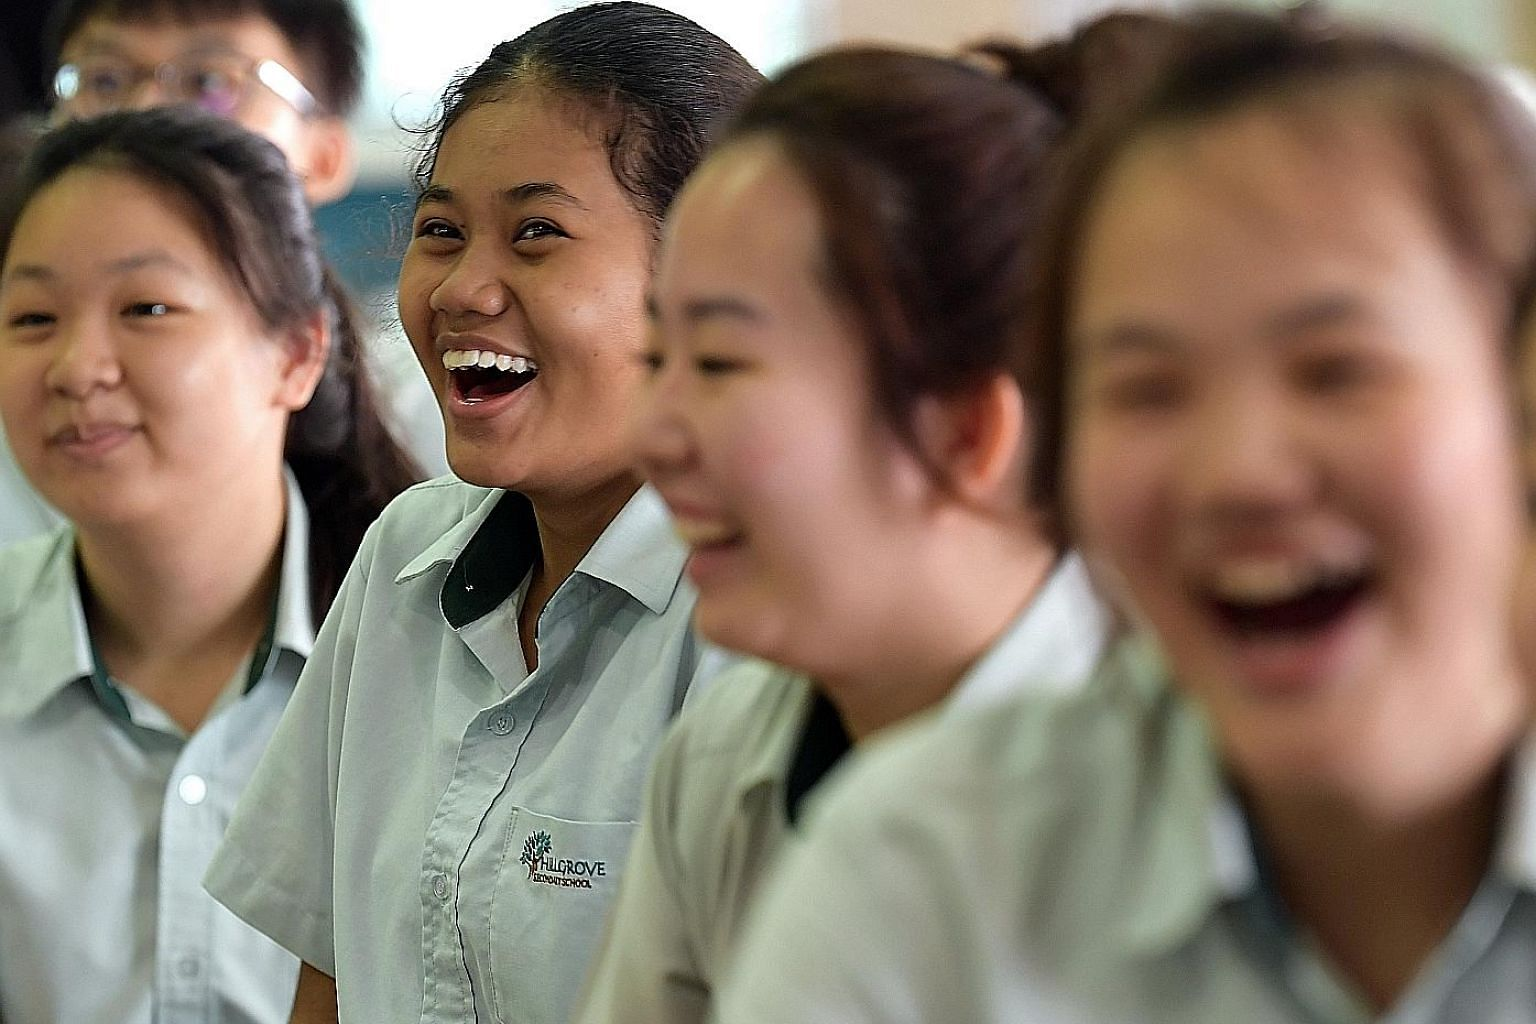 Hillgrove Secondary School student Nur Syafiqah Dahlan (second from left) and her schoolmates reacting to news of their school's performance in the N-level exams yesterday. She qualifies for Sec 5 and for Higher Nitec courses at the ITE. Principal An